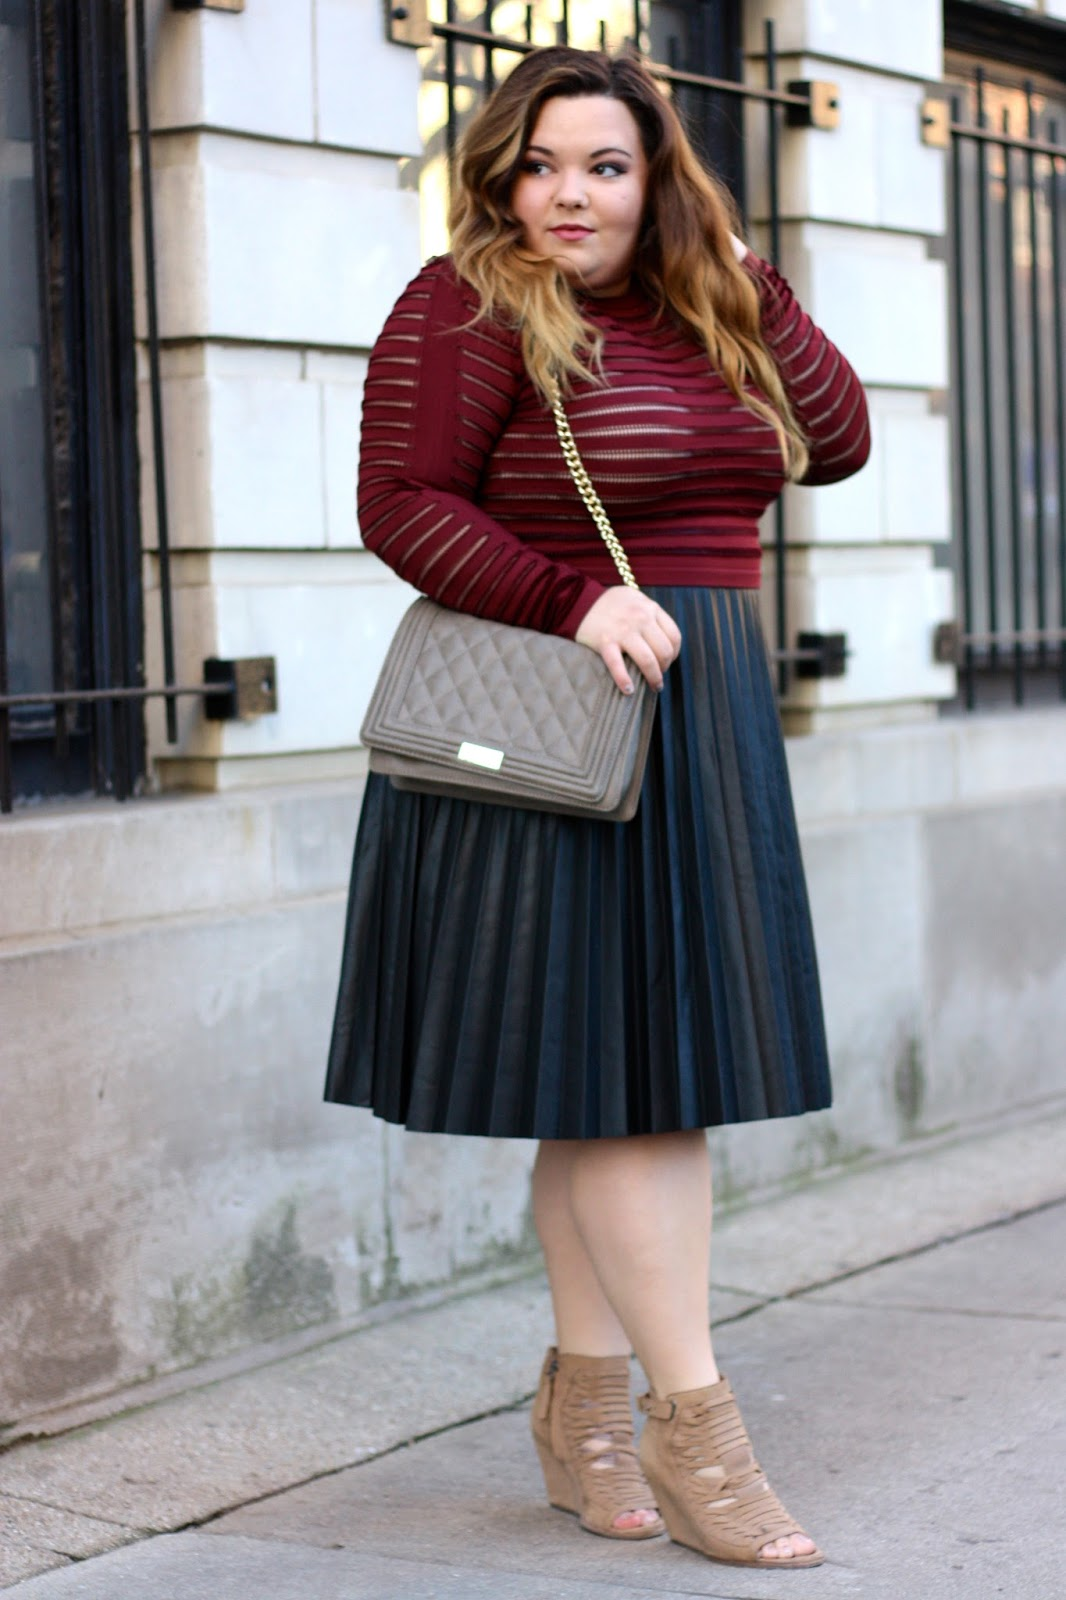 pleated leather midi skirt, pleated skirt, plus size leather skirt, plus size fashion, ps fashion blogger, fashion blogger, natalie craig, natalie in the city, BBW, thick girl, see-through top, balmain top, dulce vita wedges,